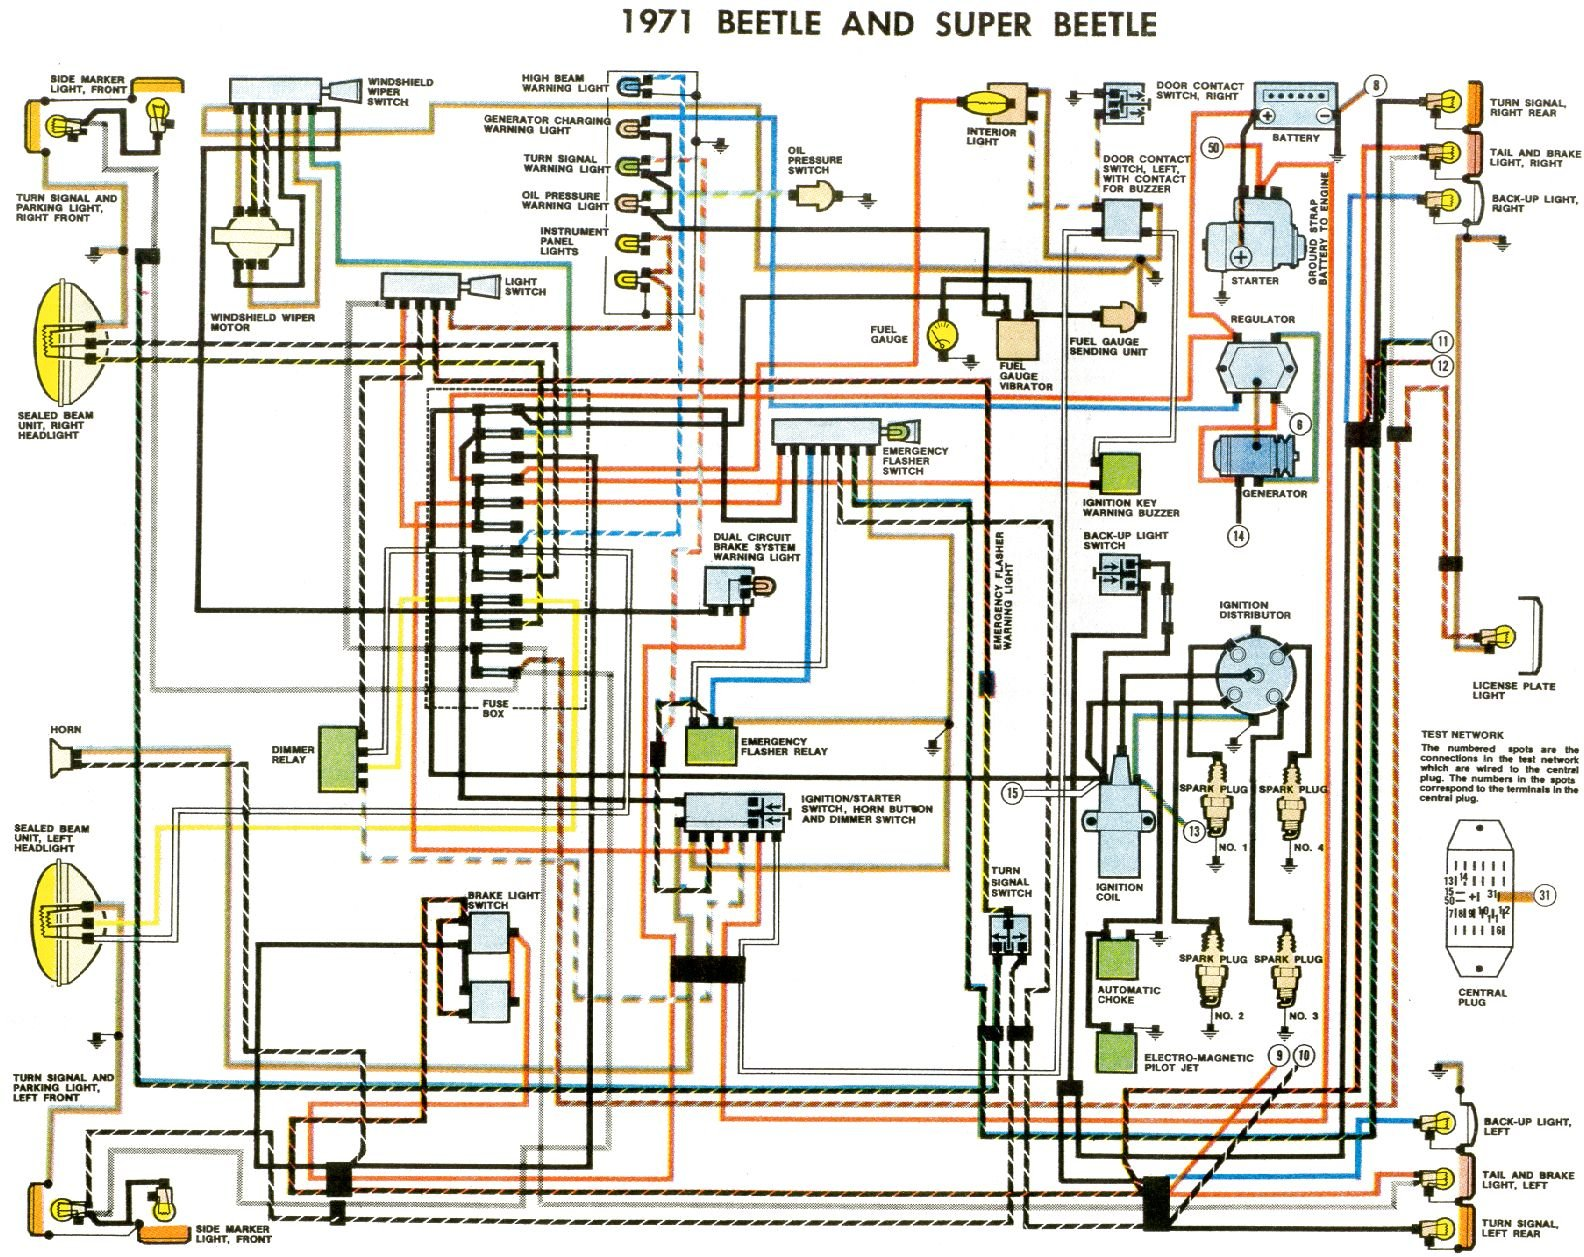 1973 dodge challenger wiring diagram for electronic distributor thesamba com type 1 wiring diagrams